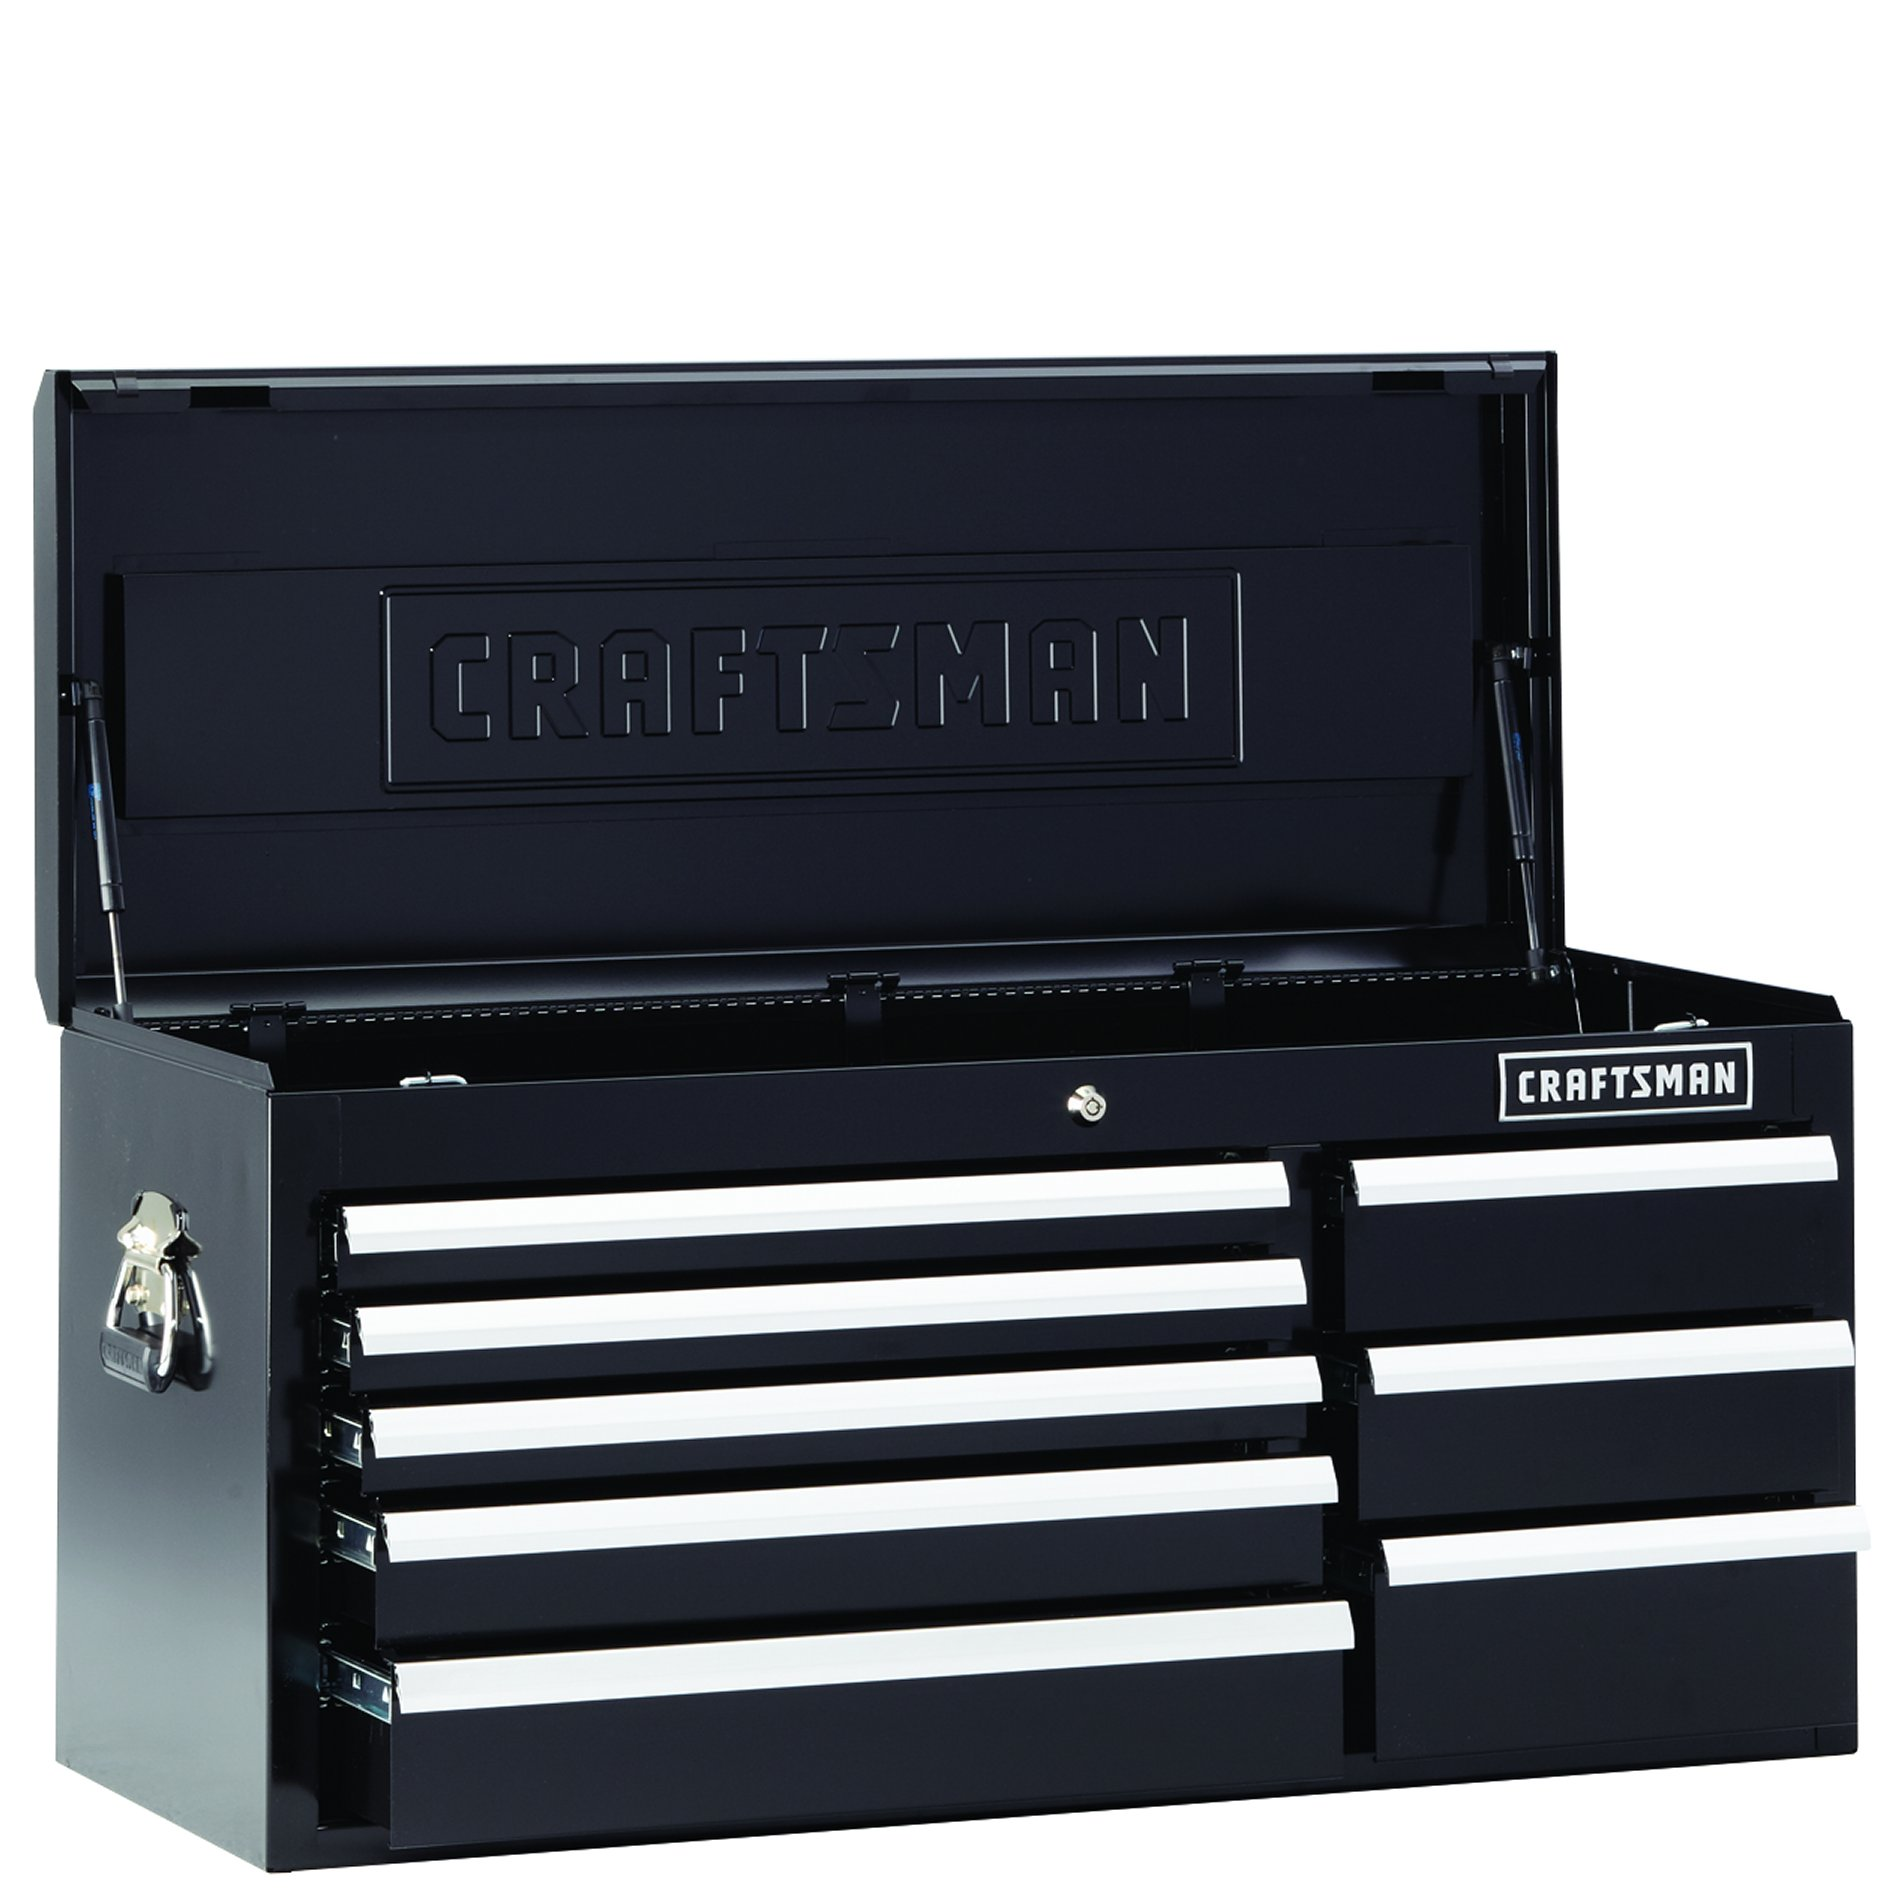 replacement kitchen drawer box knobs and handles black craftsman heavy duty top chest tool storage from sears